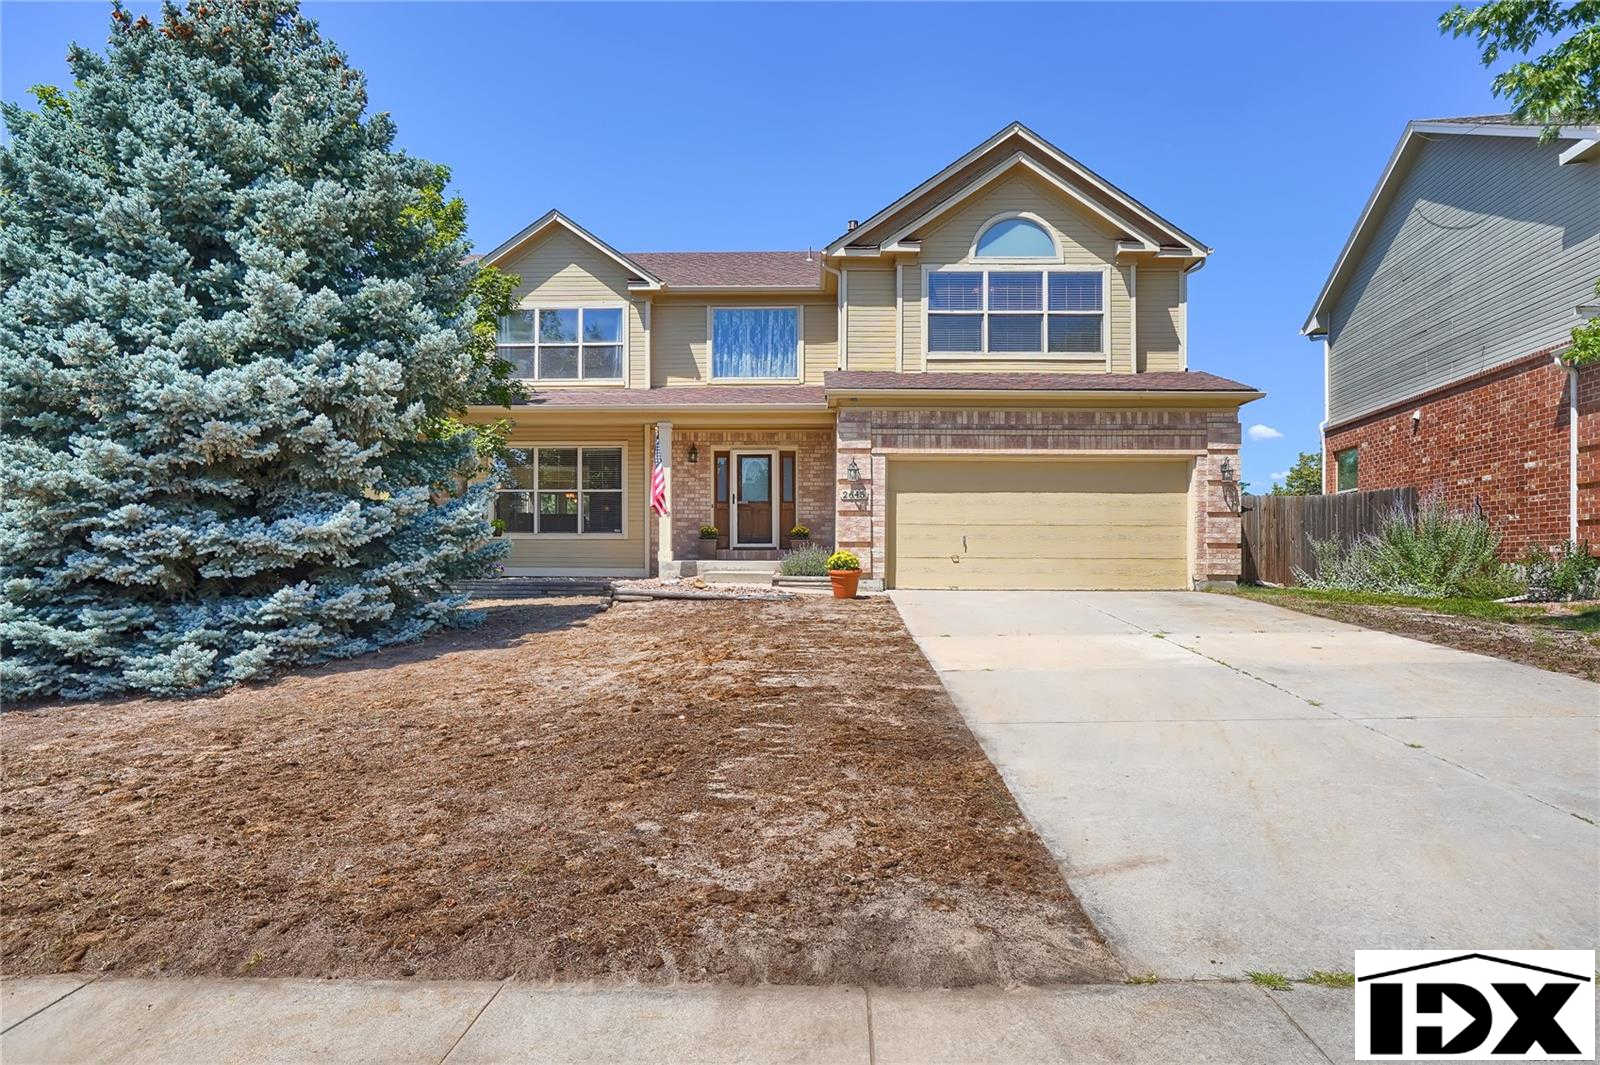 SOLD ~ Welcome to Colorado Springs, Scott, Nicole & Family!  - 2645 Helmsdale Drive, Colorado Springs, CO 80920